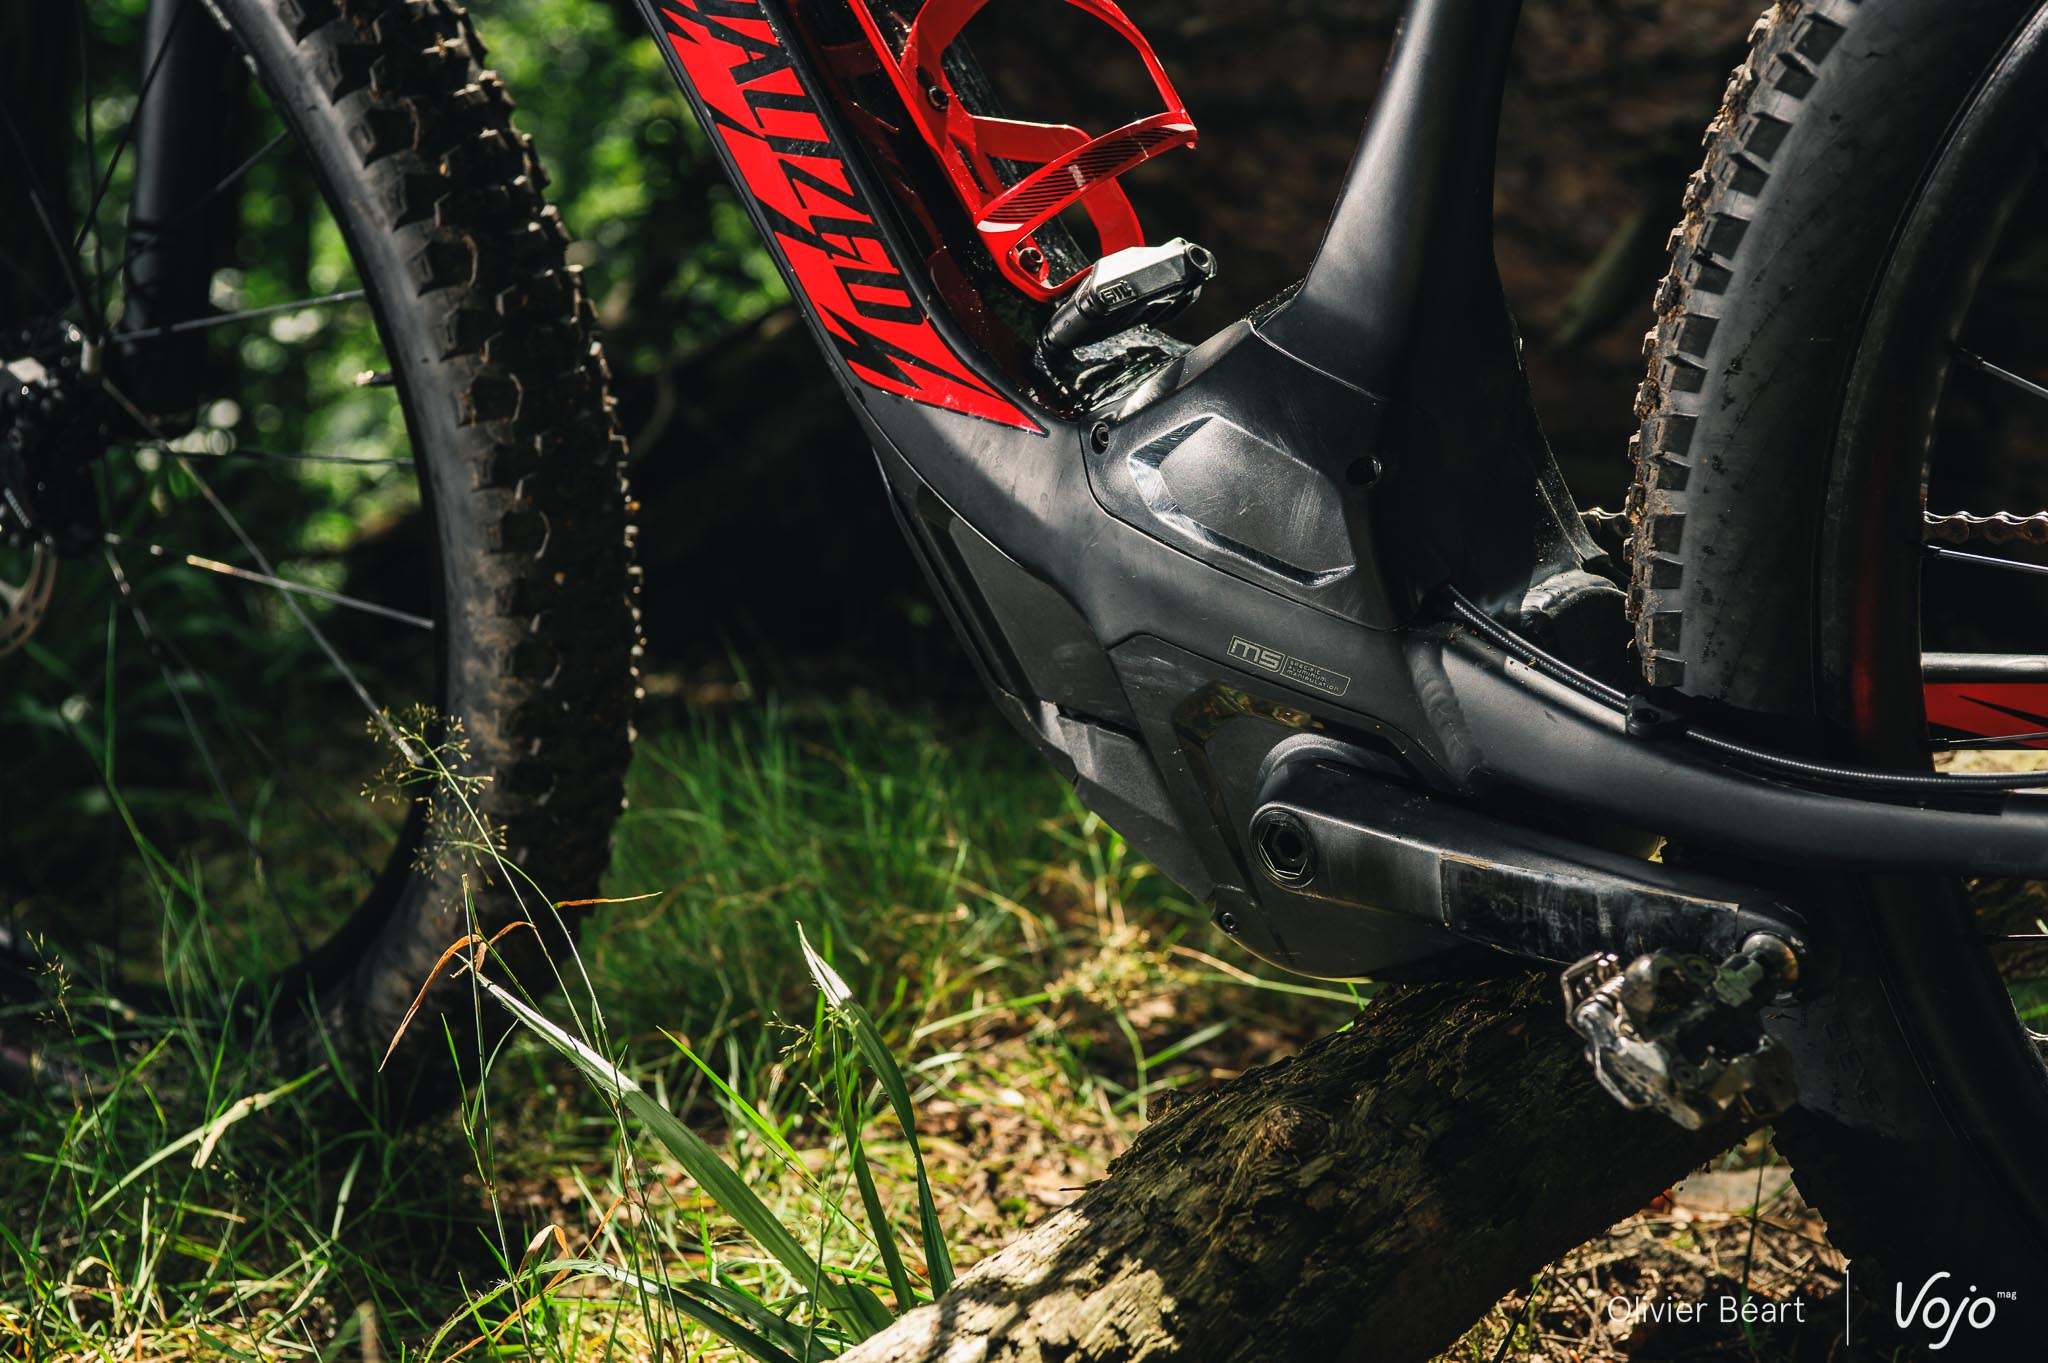 specialized_levo_ht_test_details_copyright_obeart_vojomag-26